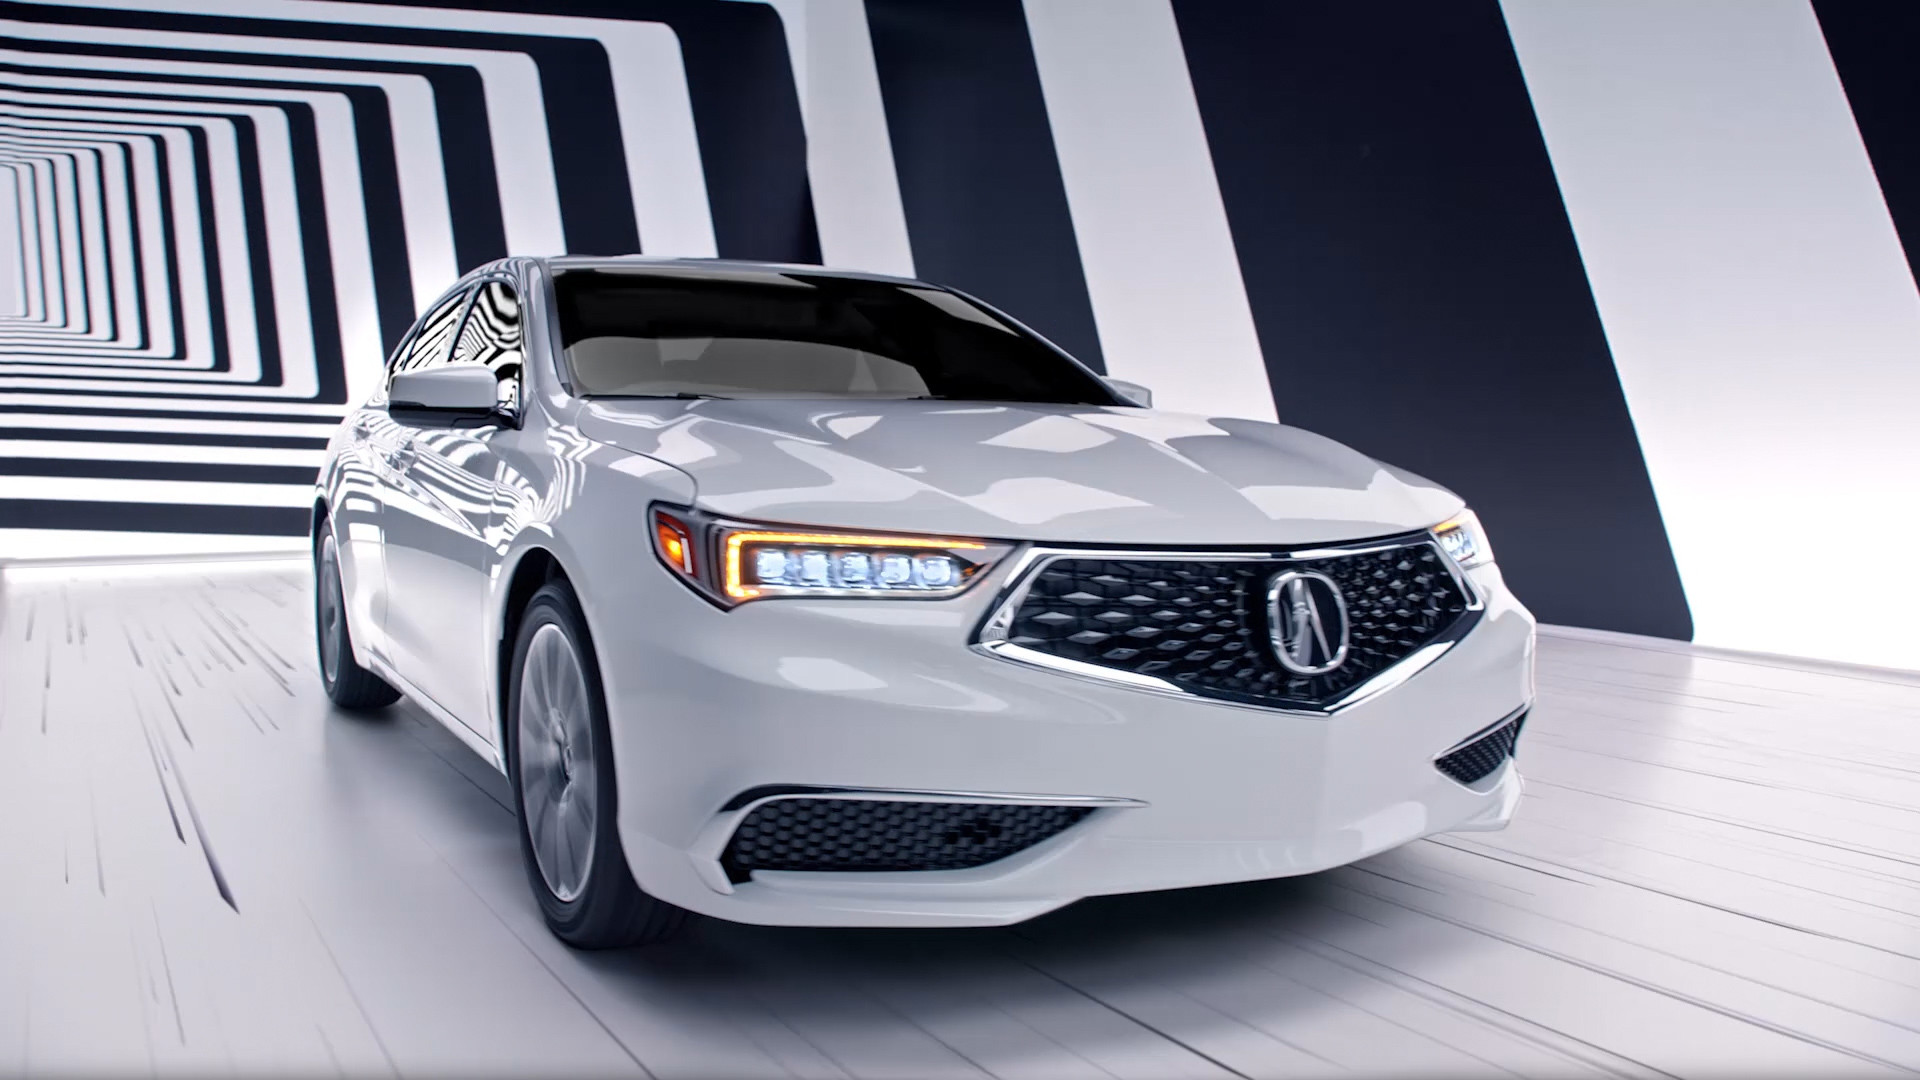 Acura_Projected_Performance_Series-00442